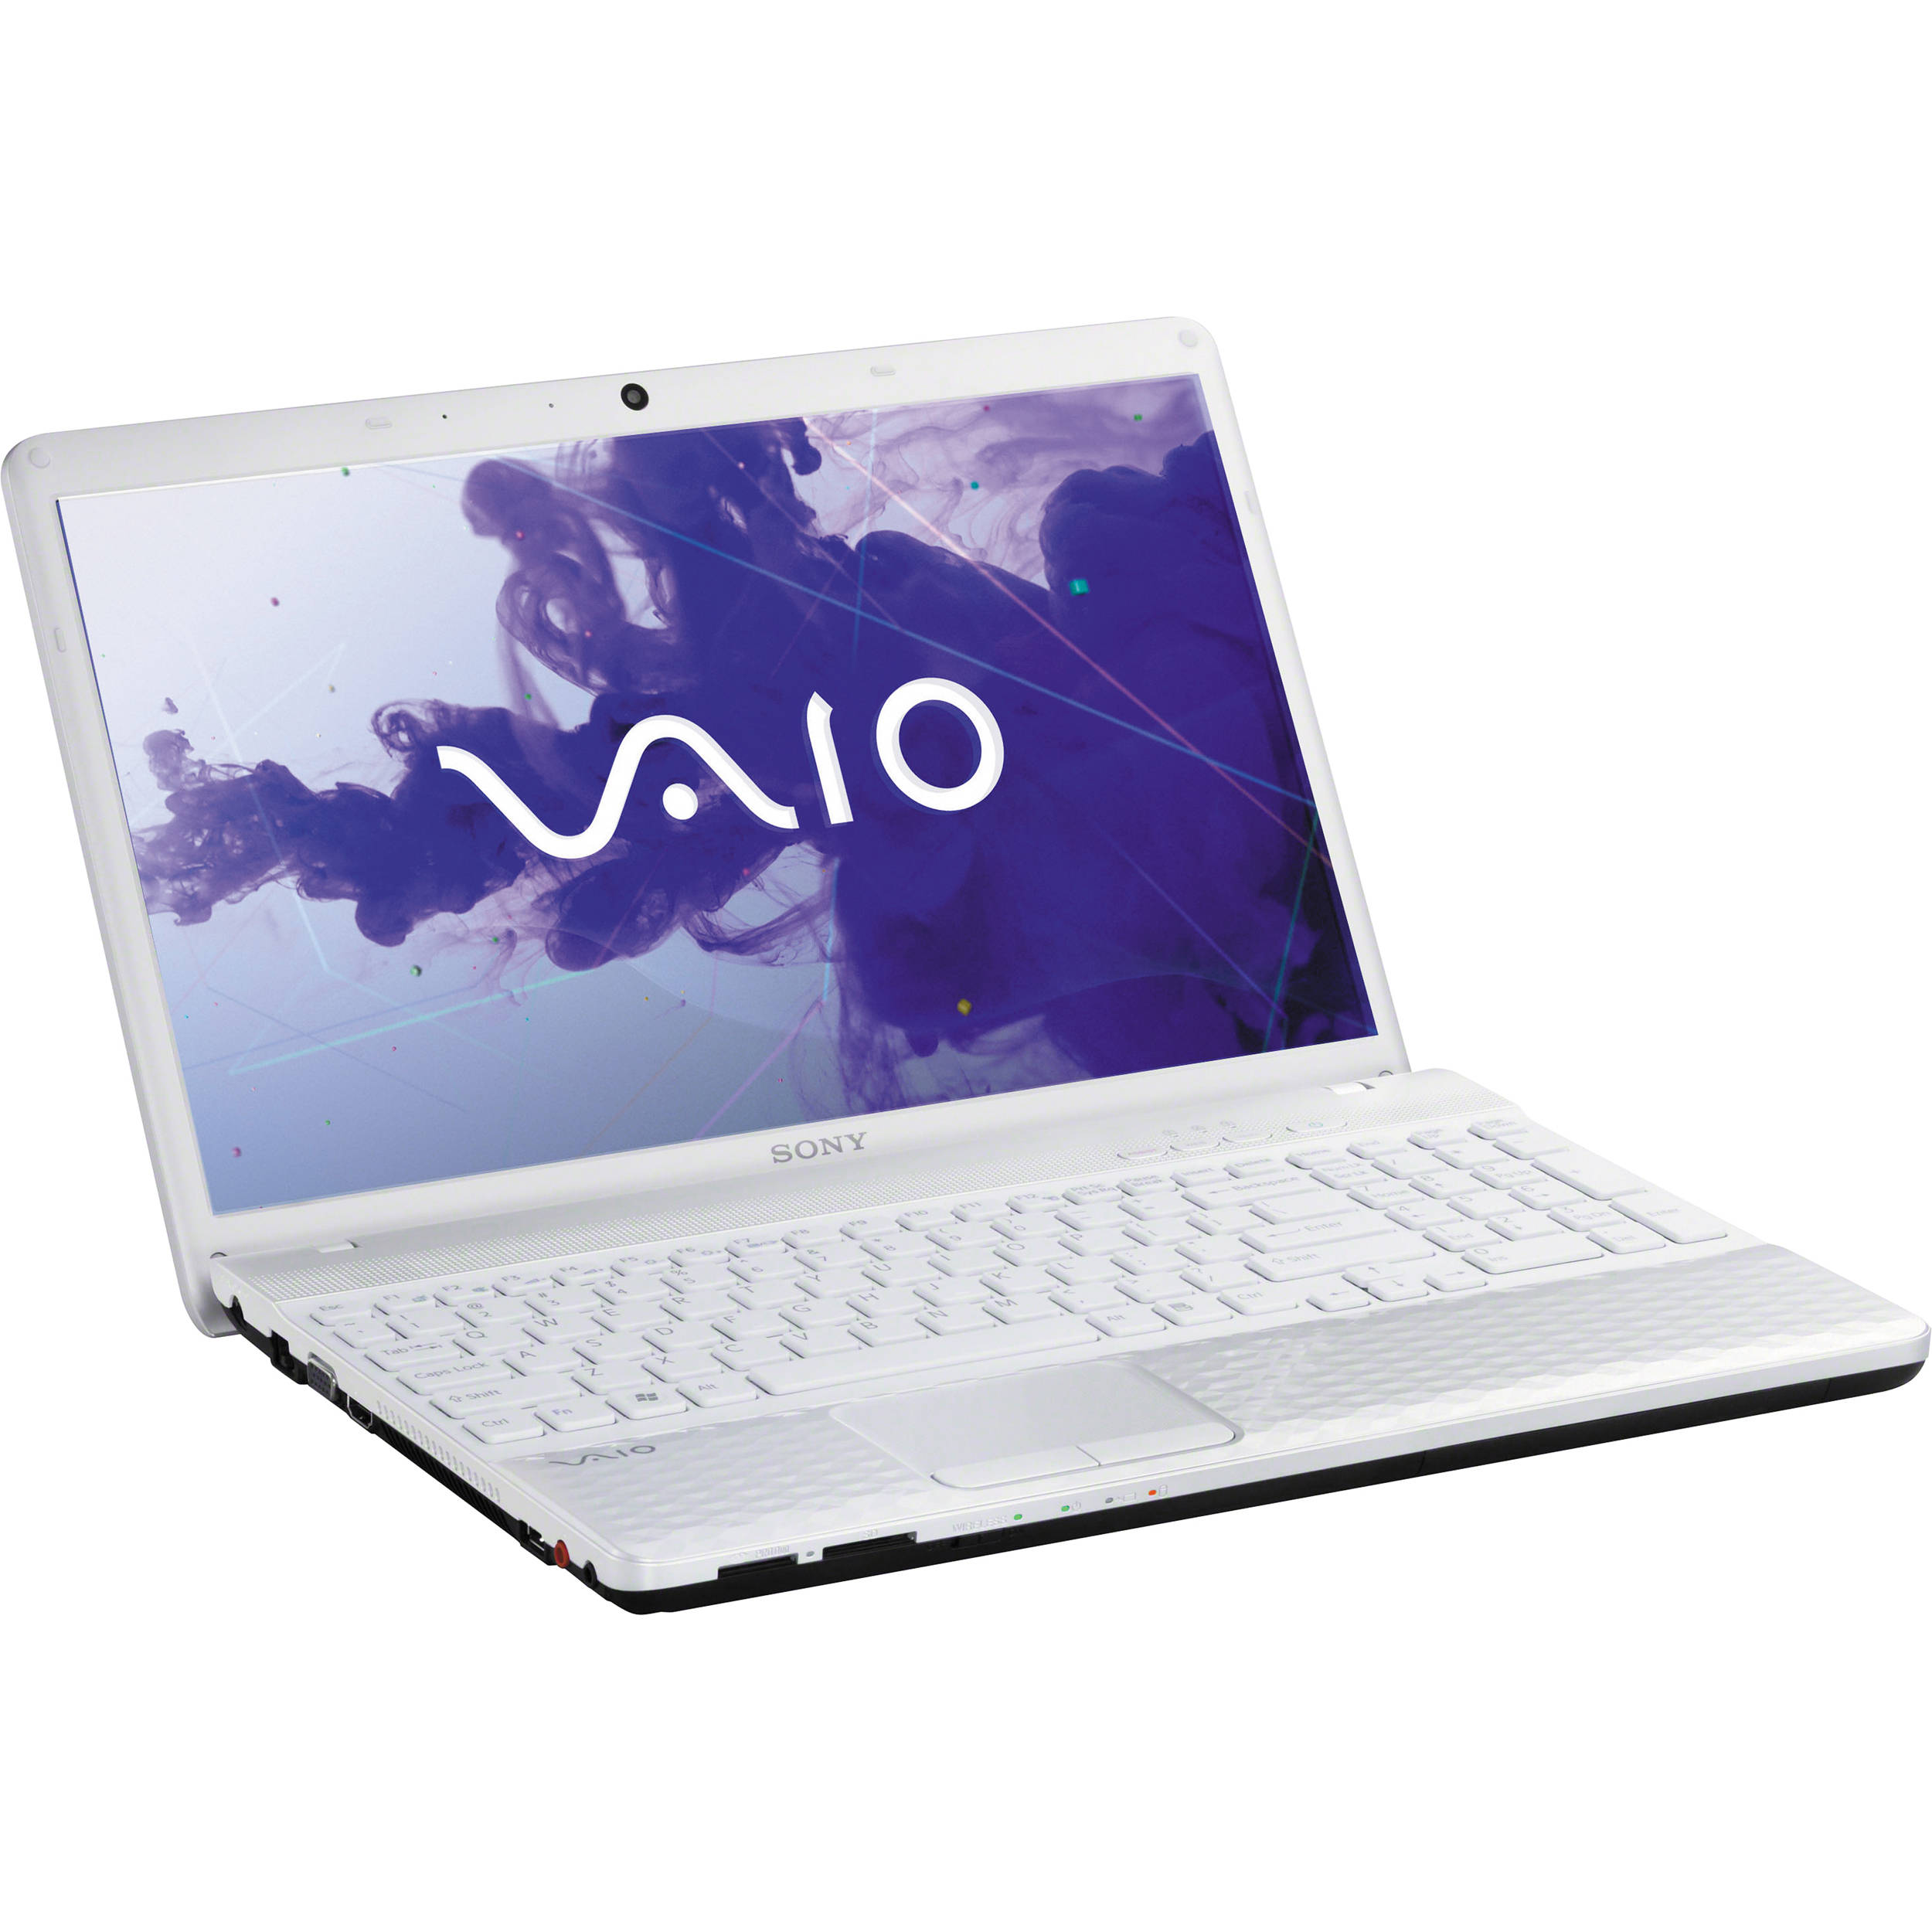 SONY VAIO VPCEH24FX SHARED LIBRARY DRIVER FOR WINDOWS DOWNLOAD